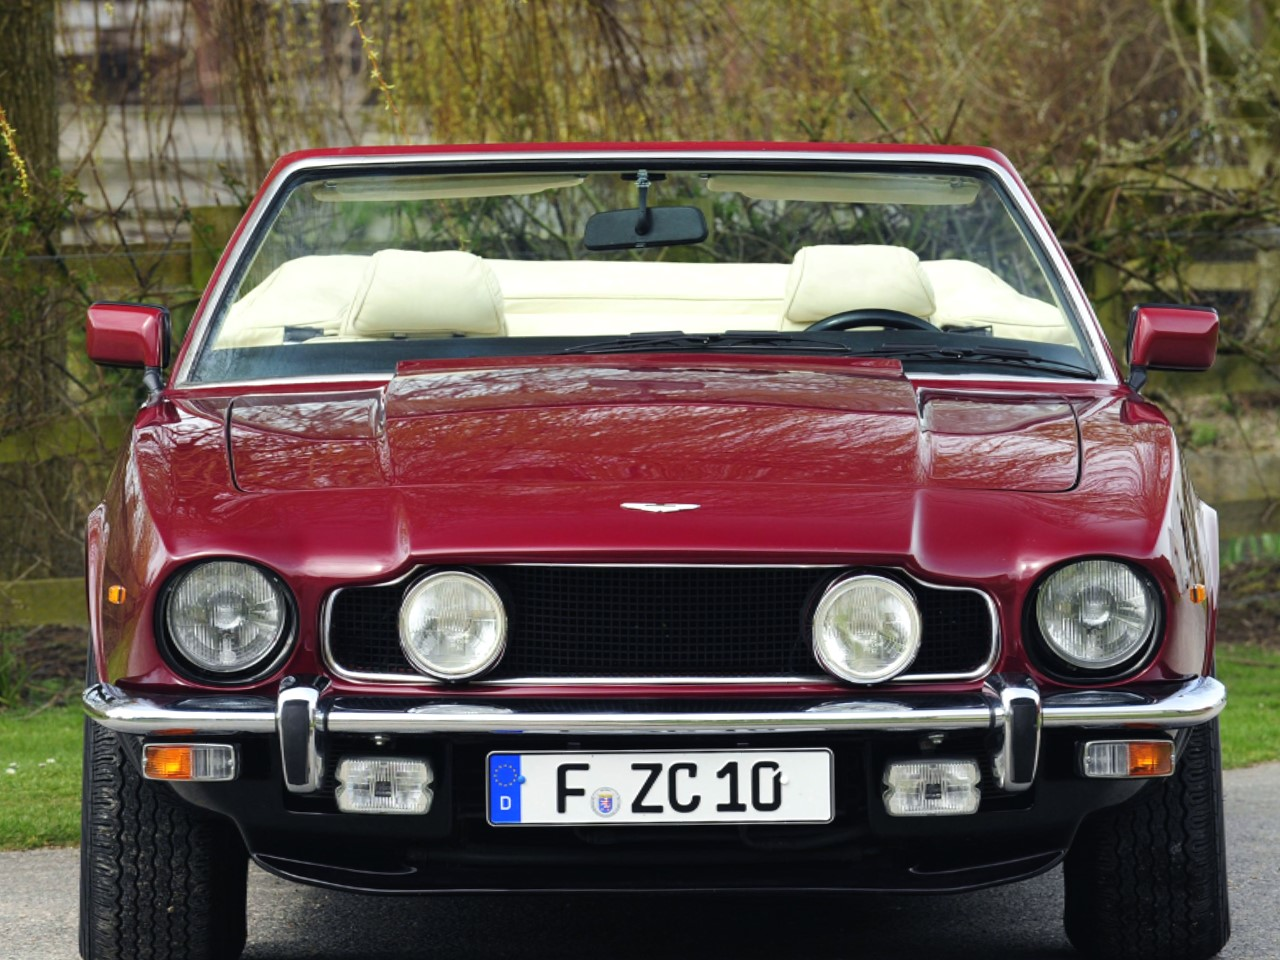 aston martin v8 vantage 1985. the series five v8 vantage volante convertible was introduced in 1986 at new york international auto show and built until 1989. aston martin 1985